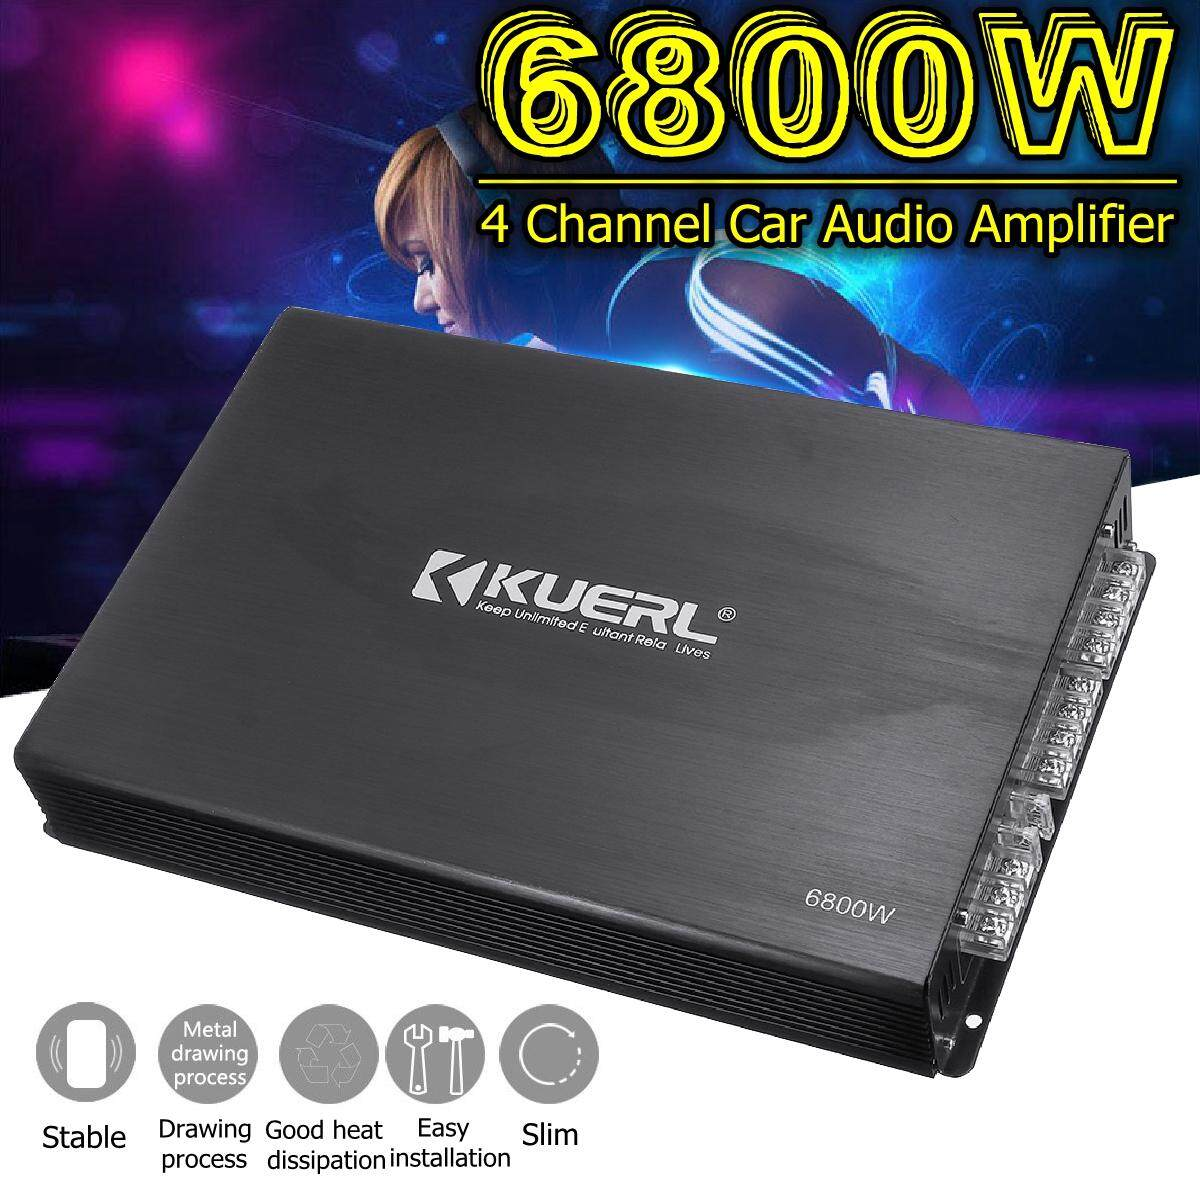 12V 6800W 4 Channel System Amplifiers Car Amplifier Bridge Connection Bass Audio AMP Power Stereo Surround Subwoofer Music with 4 Speaker Holes